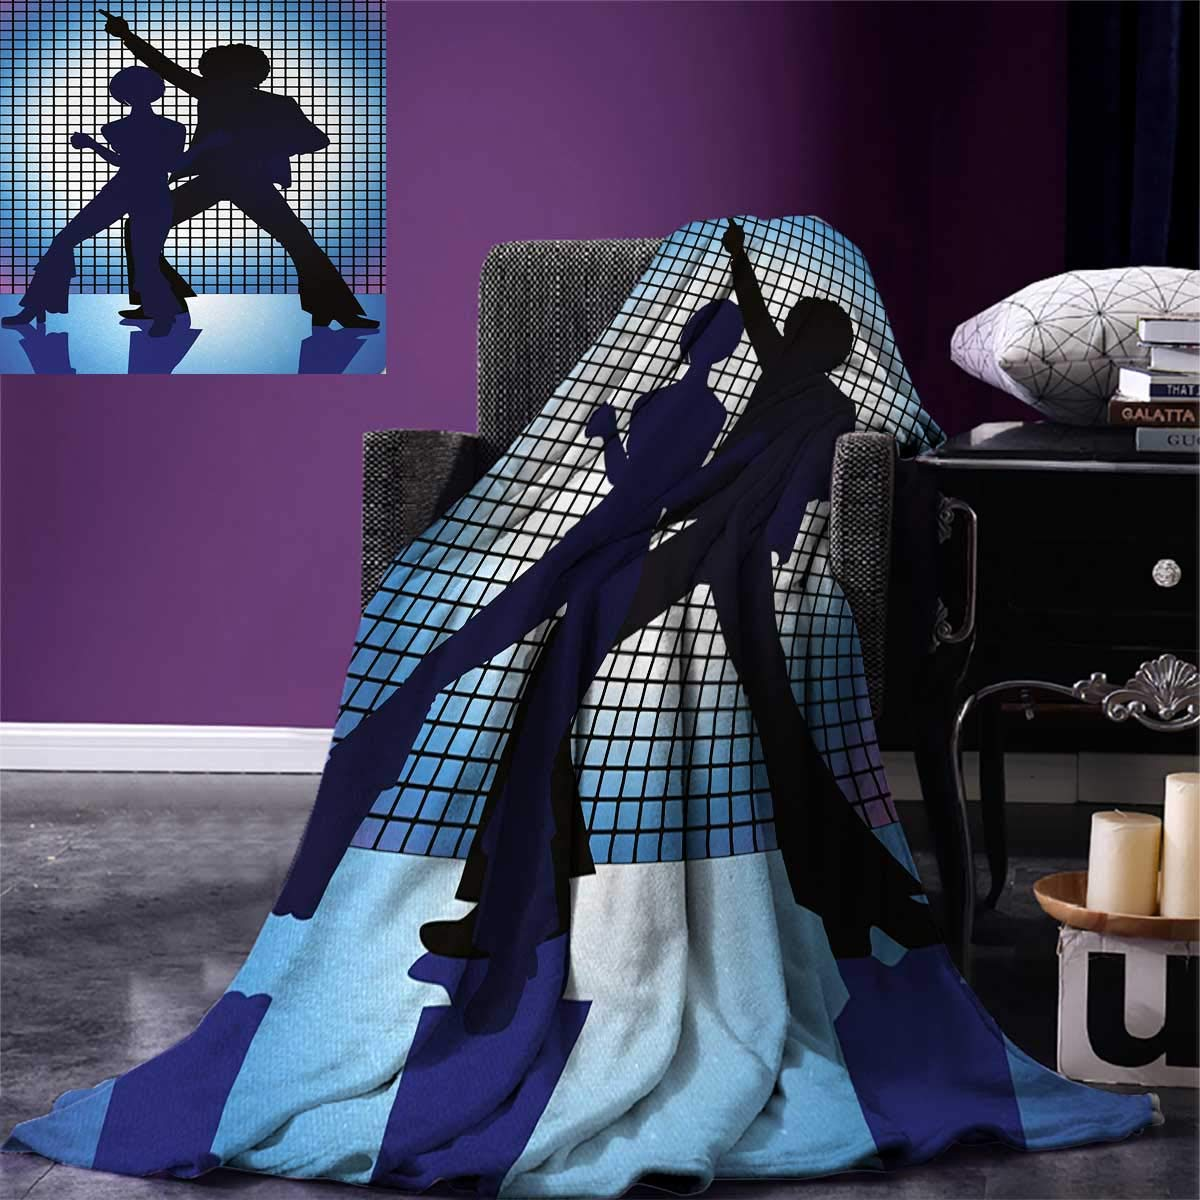 70s Party Digital Printing Blanket Couple Silhouettes on The Dance Floor in Night Life Oldies Seventies Fun Summer Quilt Comforter 80''x60'' Blue Purple Black